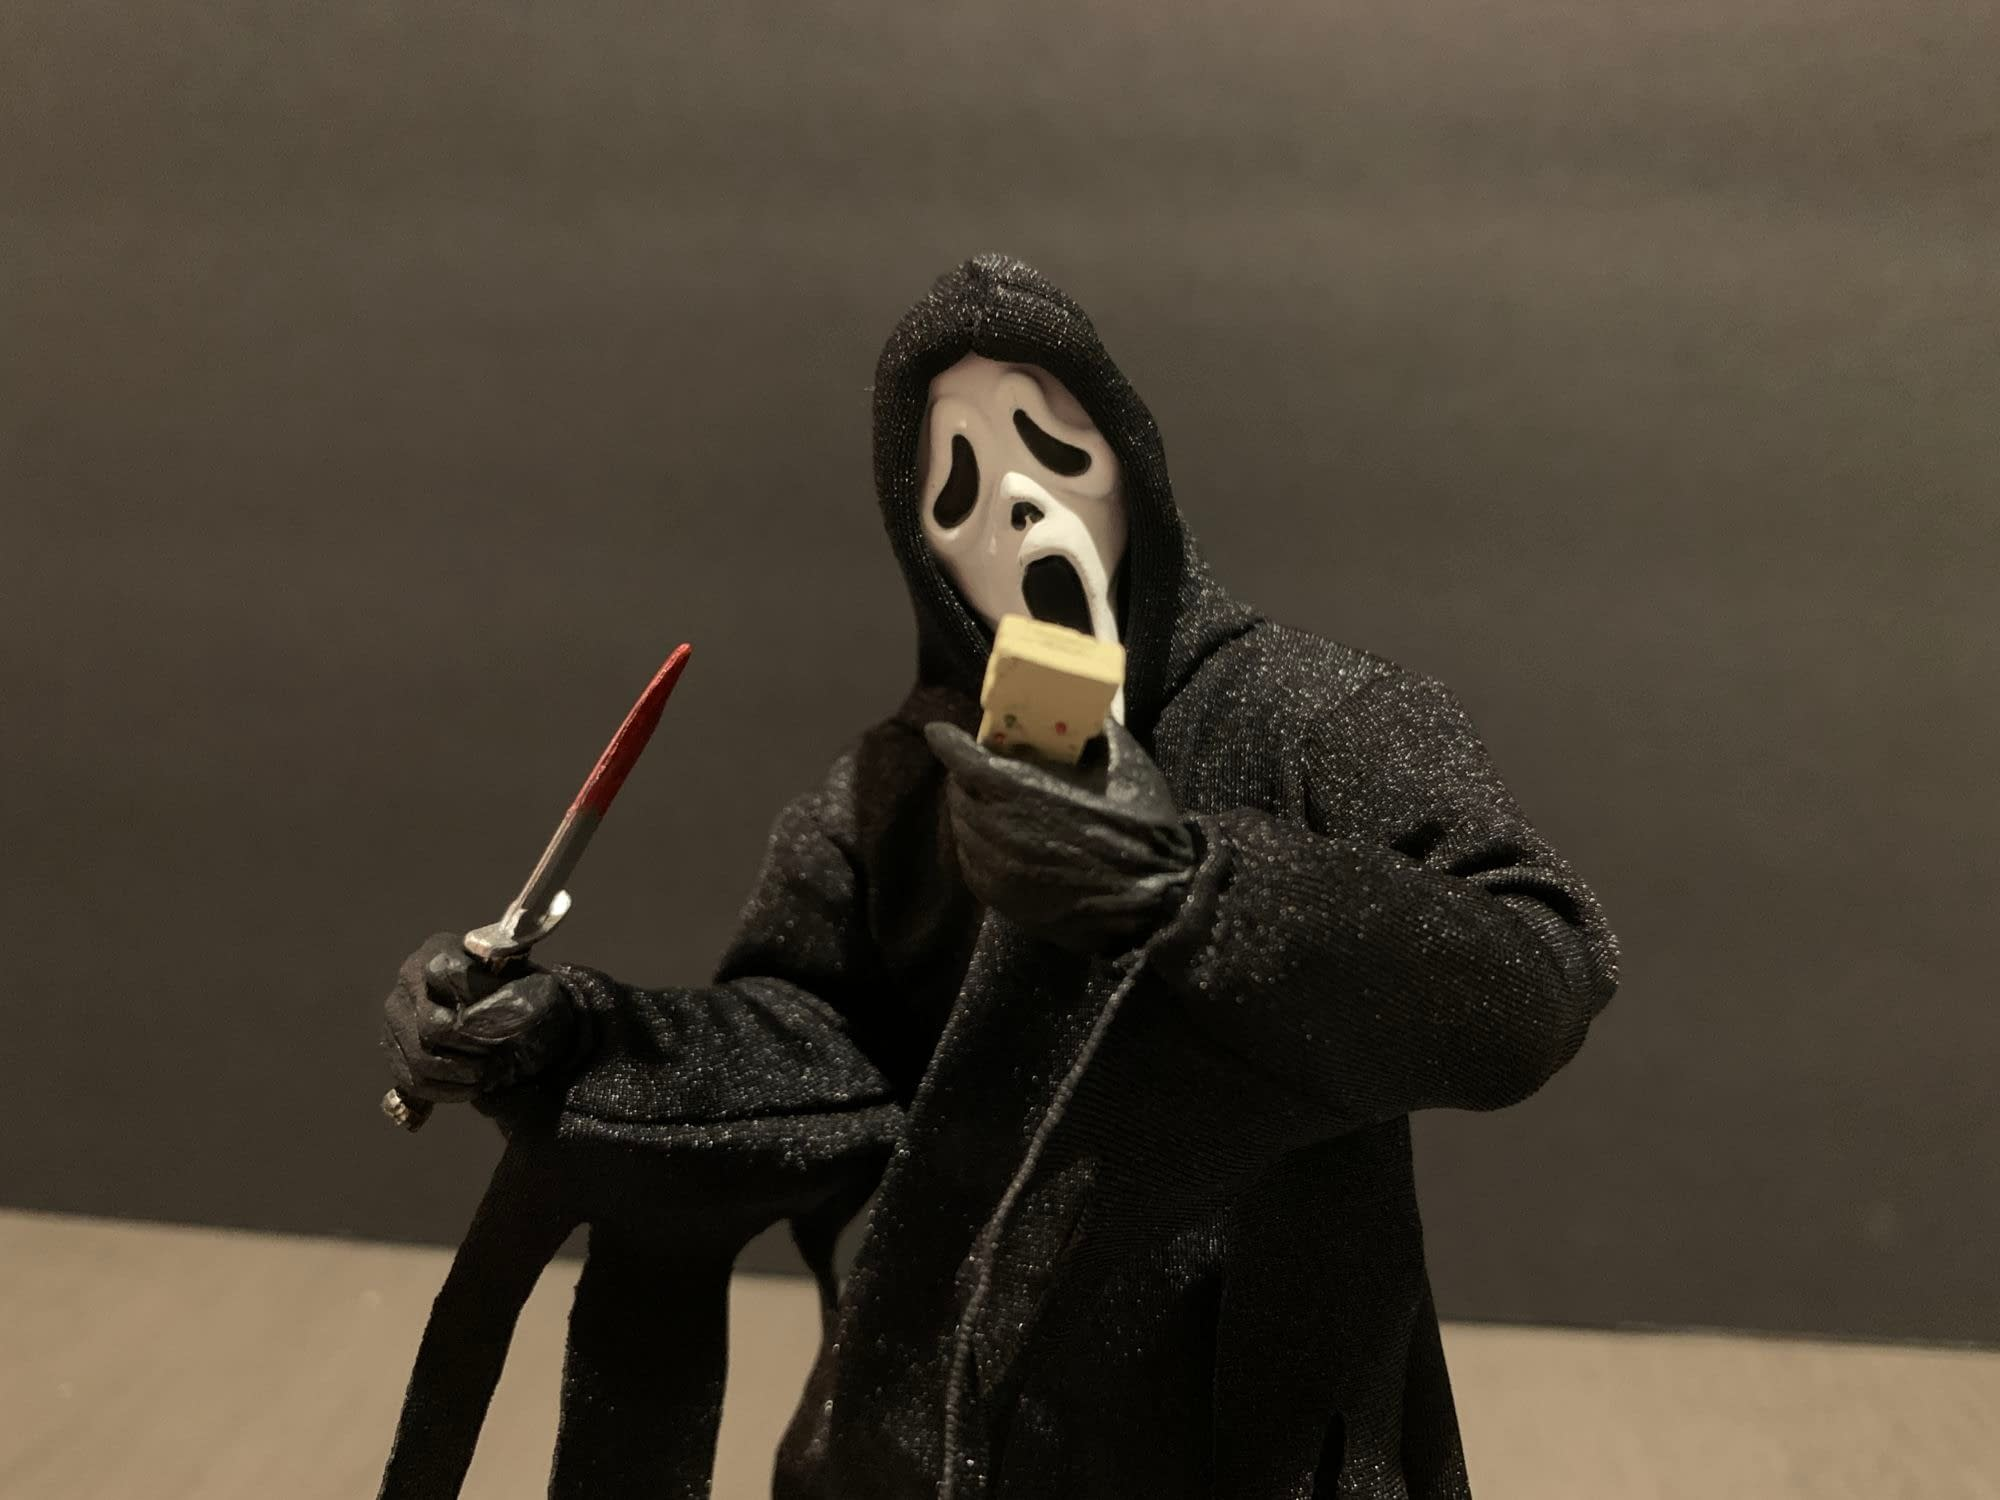 NECA's New Ghost Face Ultimate Figure Is A Scream Fans Dream